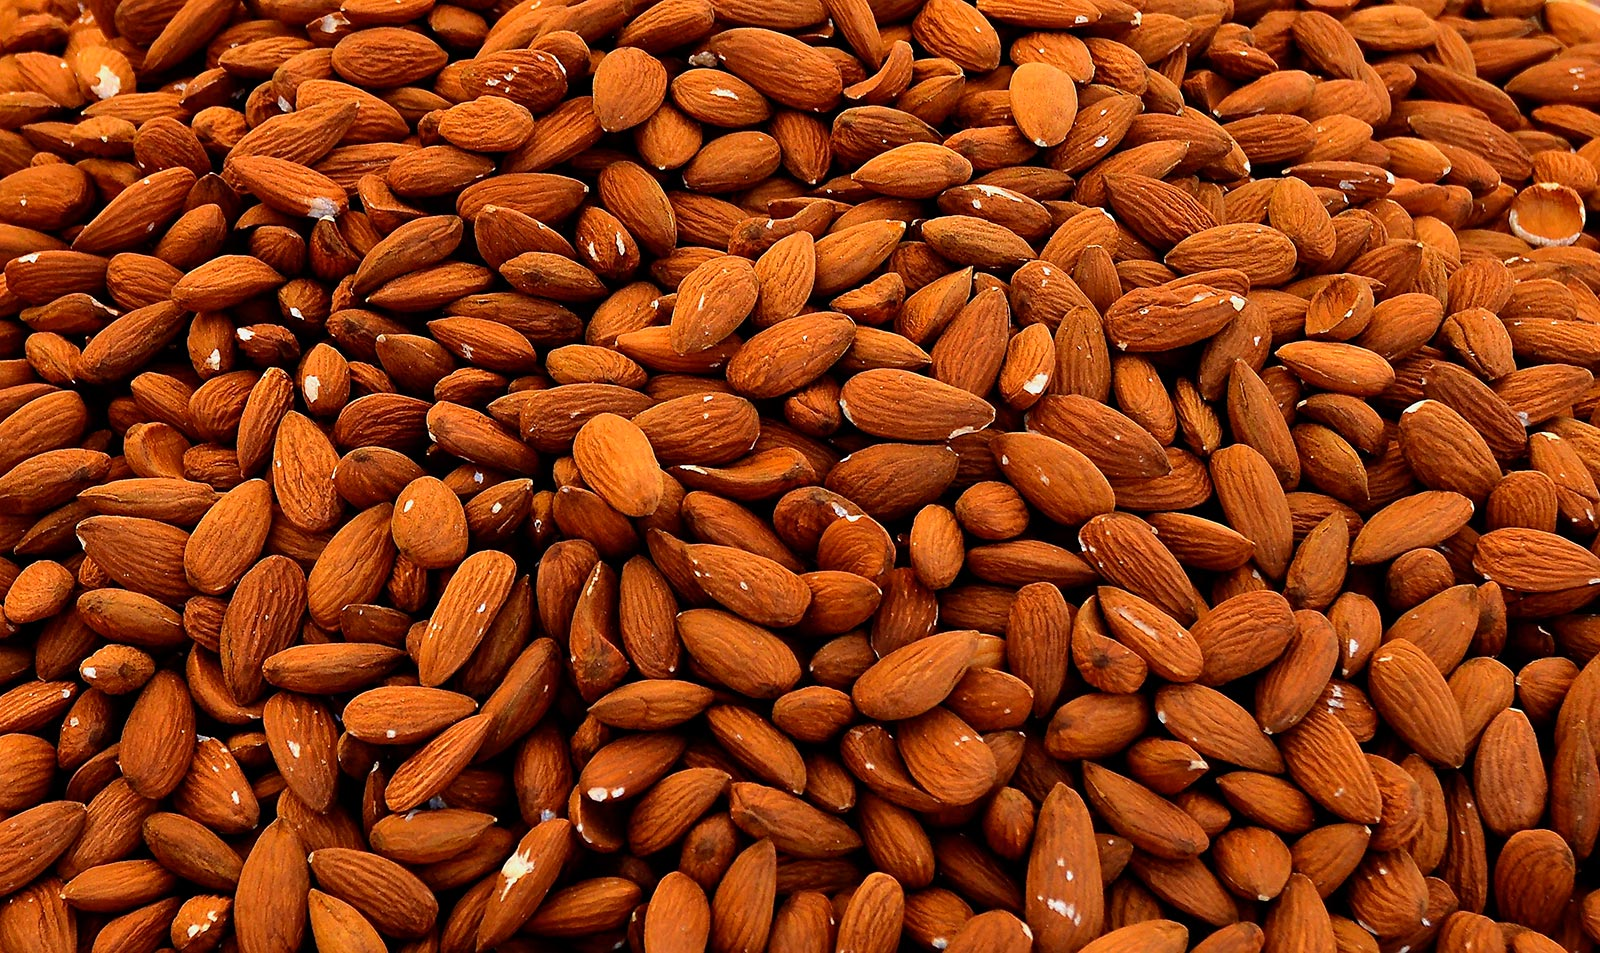 Dry fruits, seeds, spices and herbs